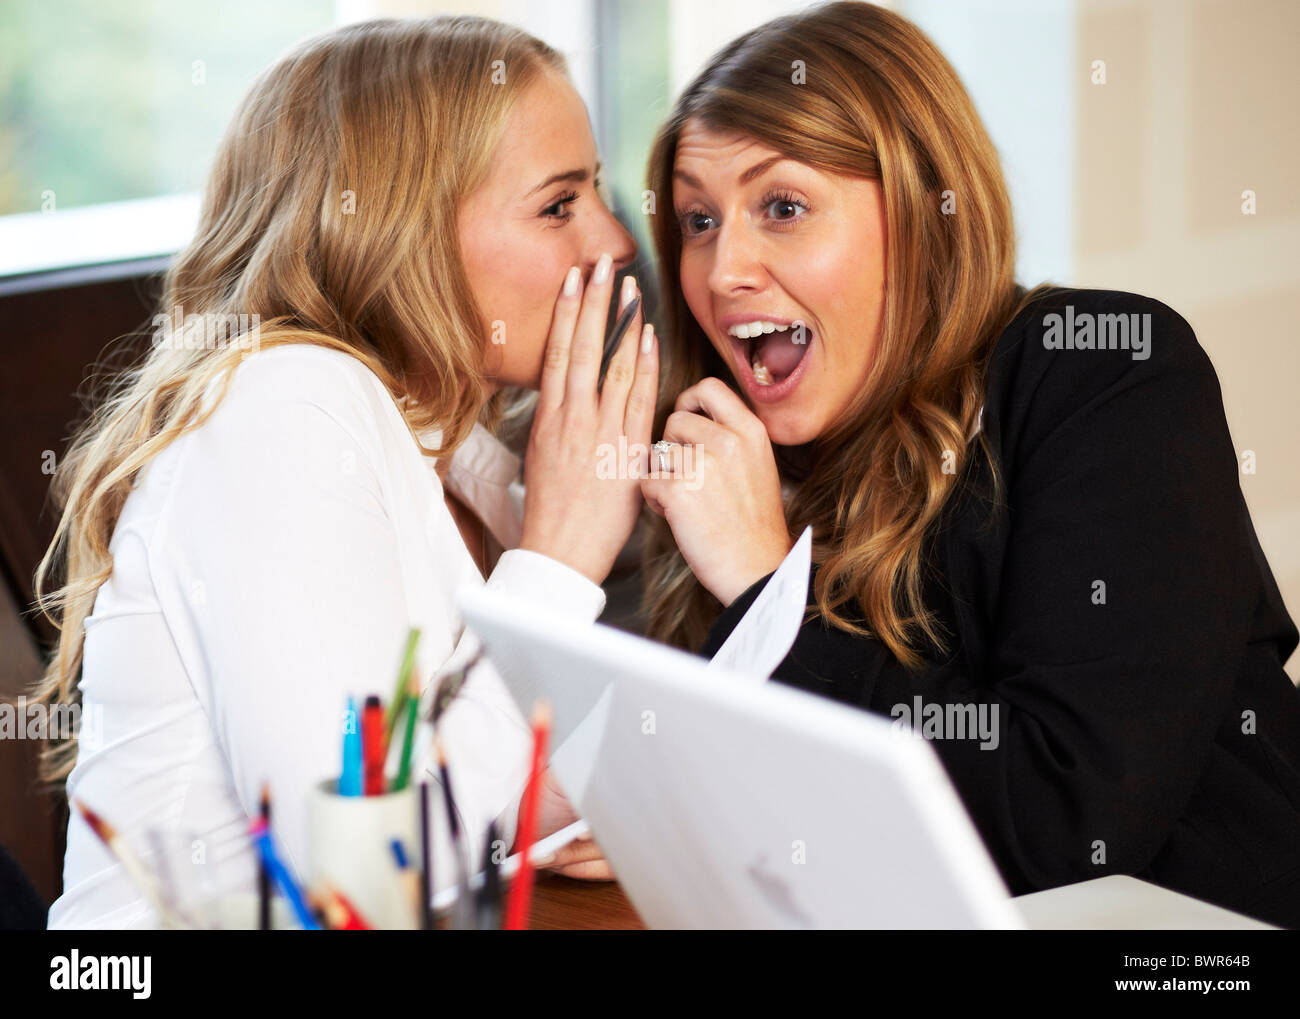 Girls in office - Stock Image